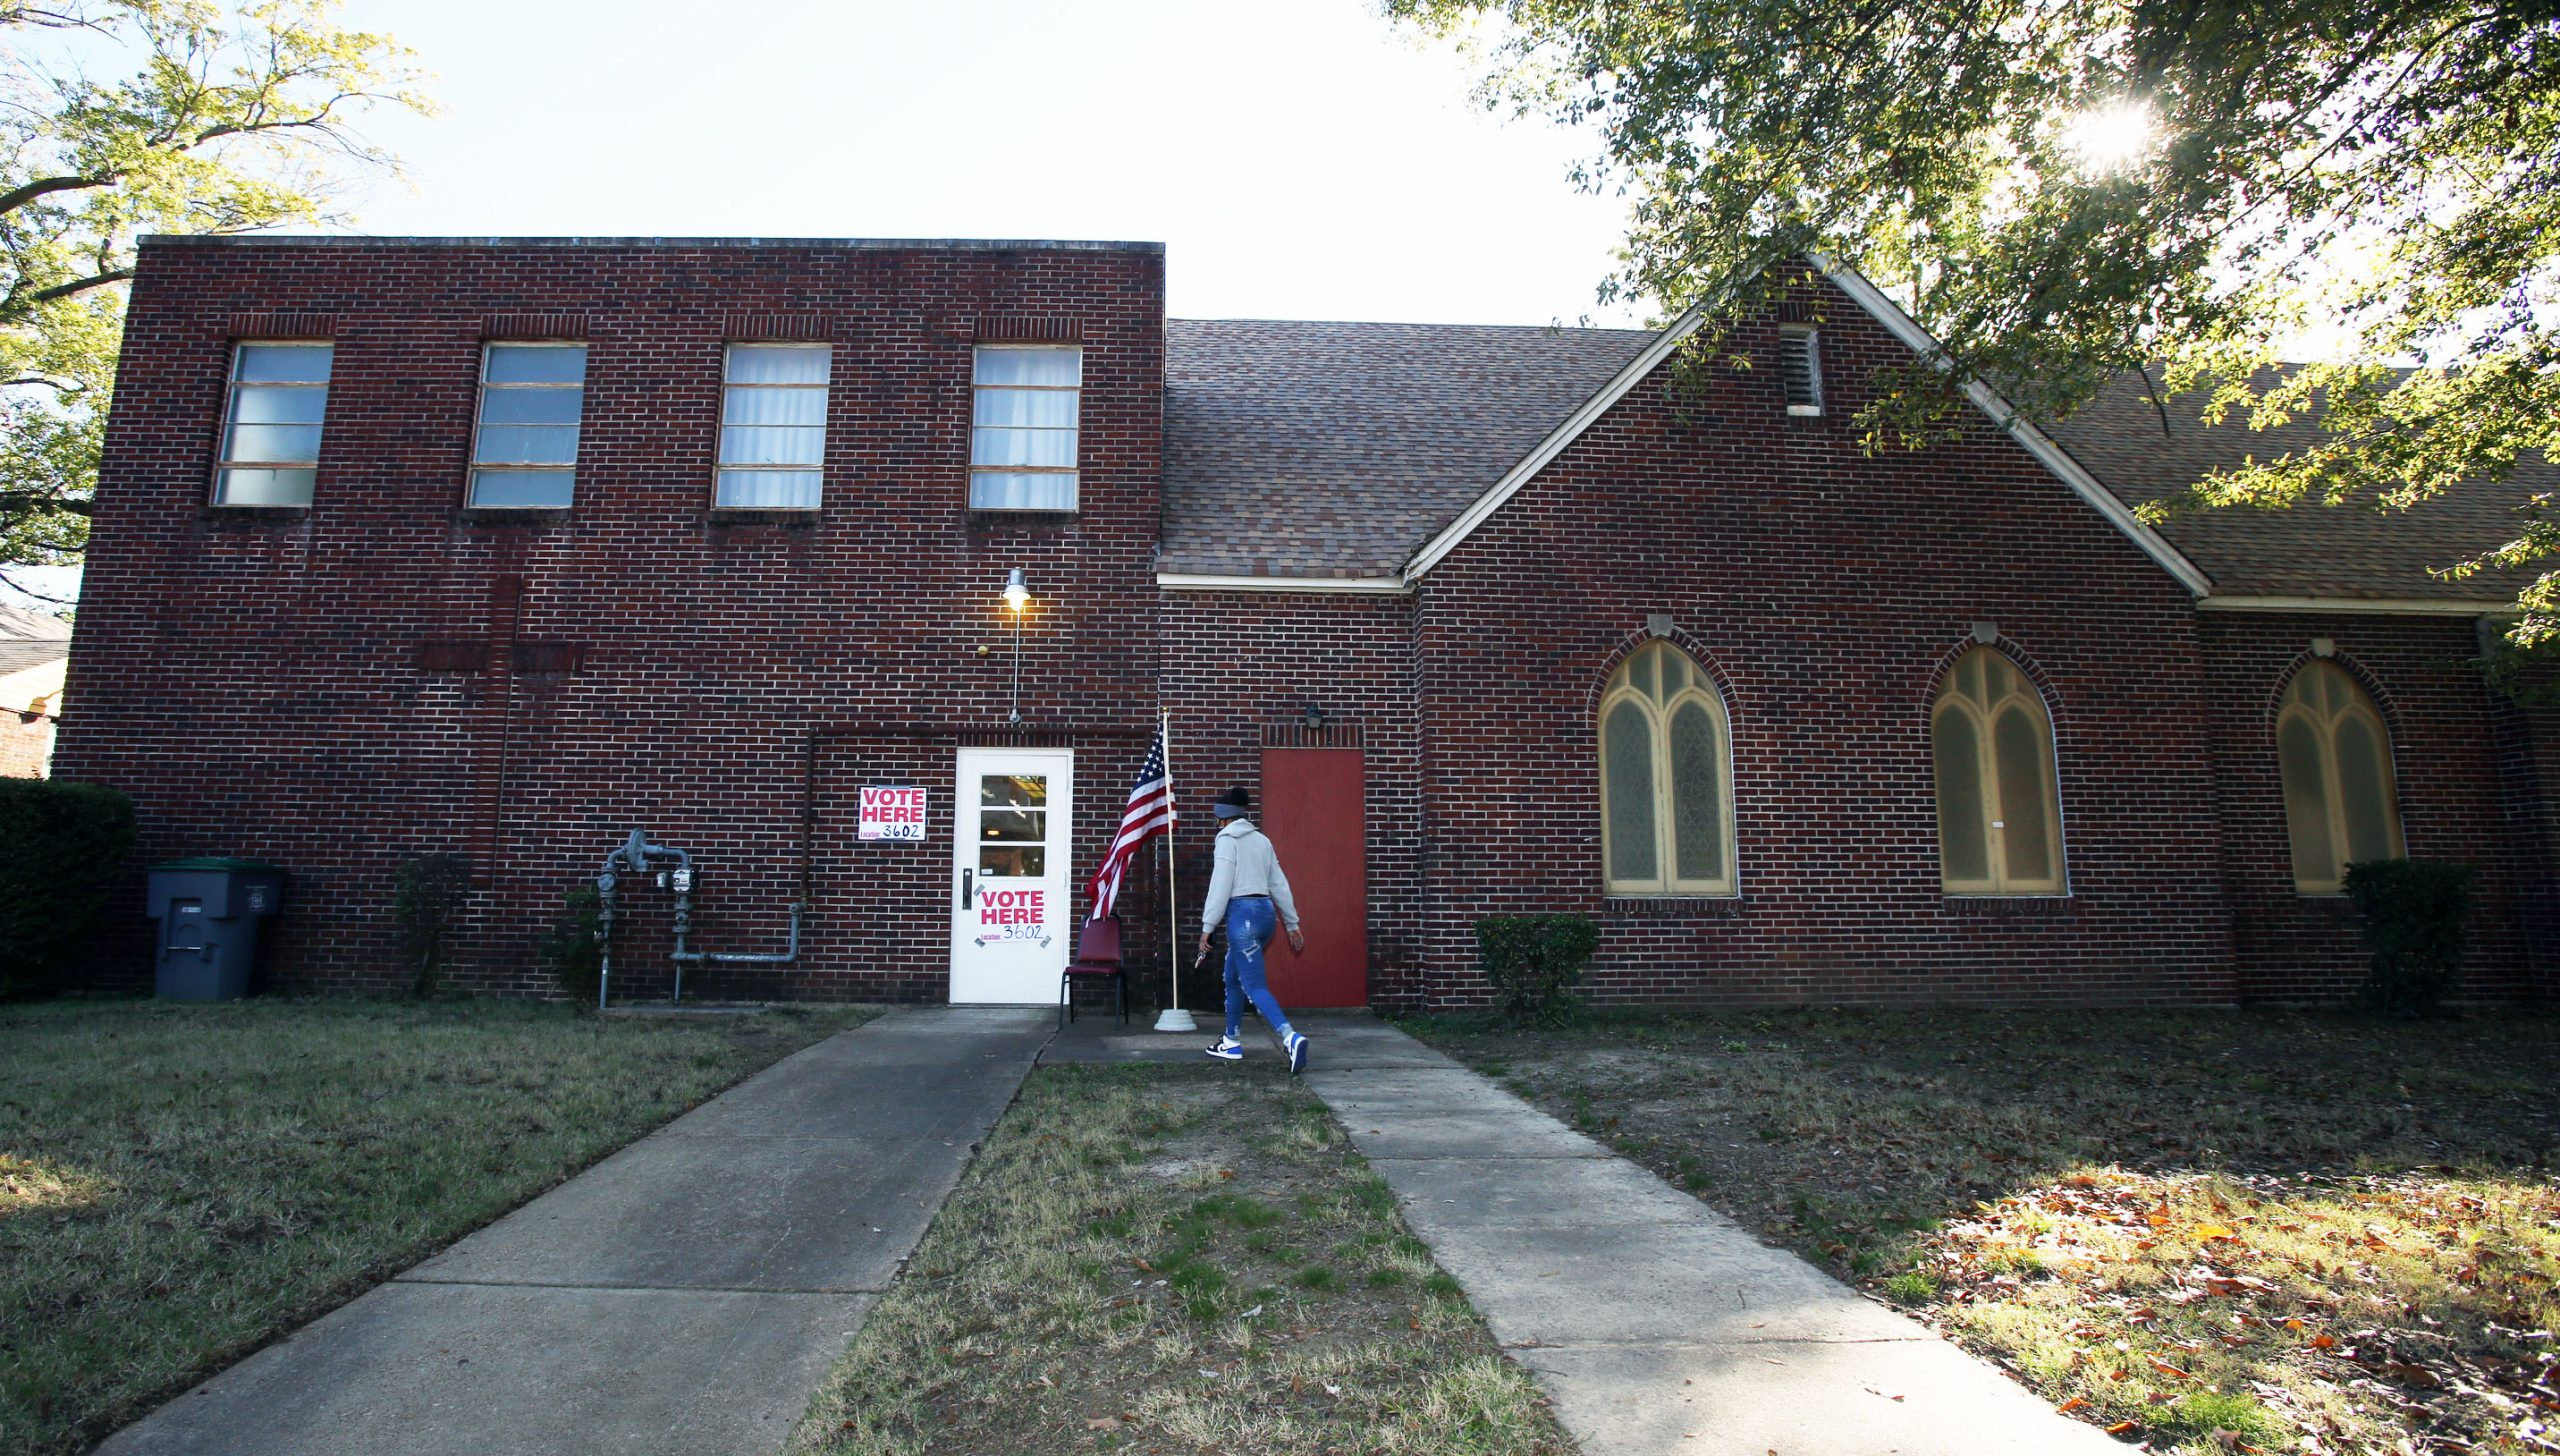 Memphis voters came out to vote at Peace Lutheran Church-ELCA in north Memphis for the 2020 election on Nov. 3, 2020. (Photo by Karen Pulfer Focht)